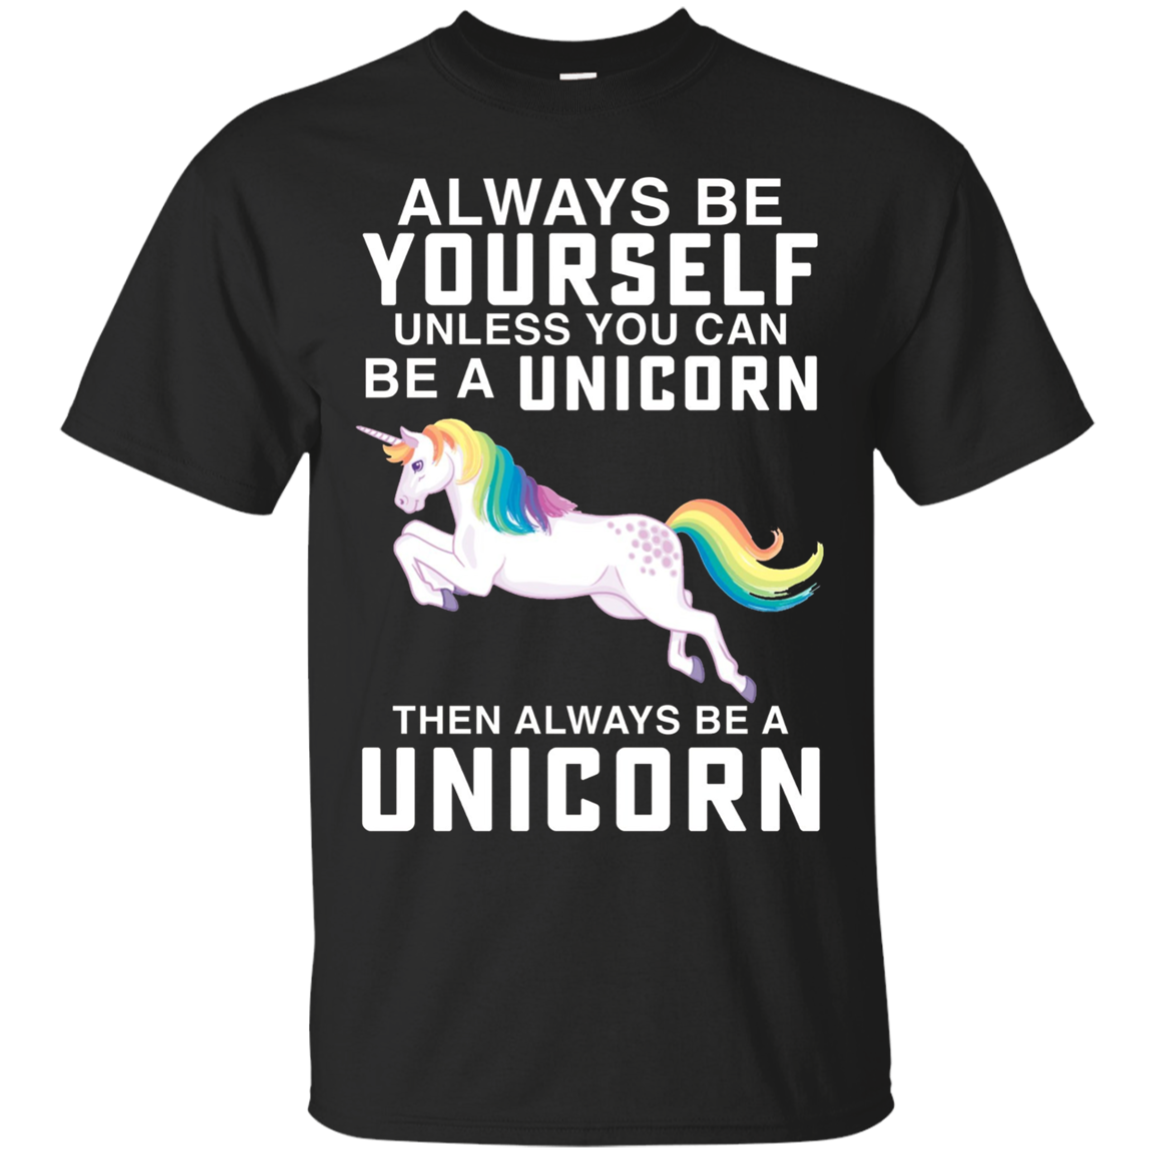 Always be a Yourself Unless you can be a Unicorn T-Shirt